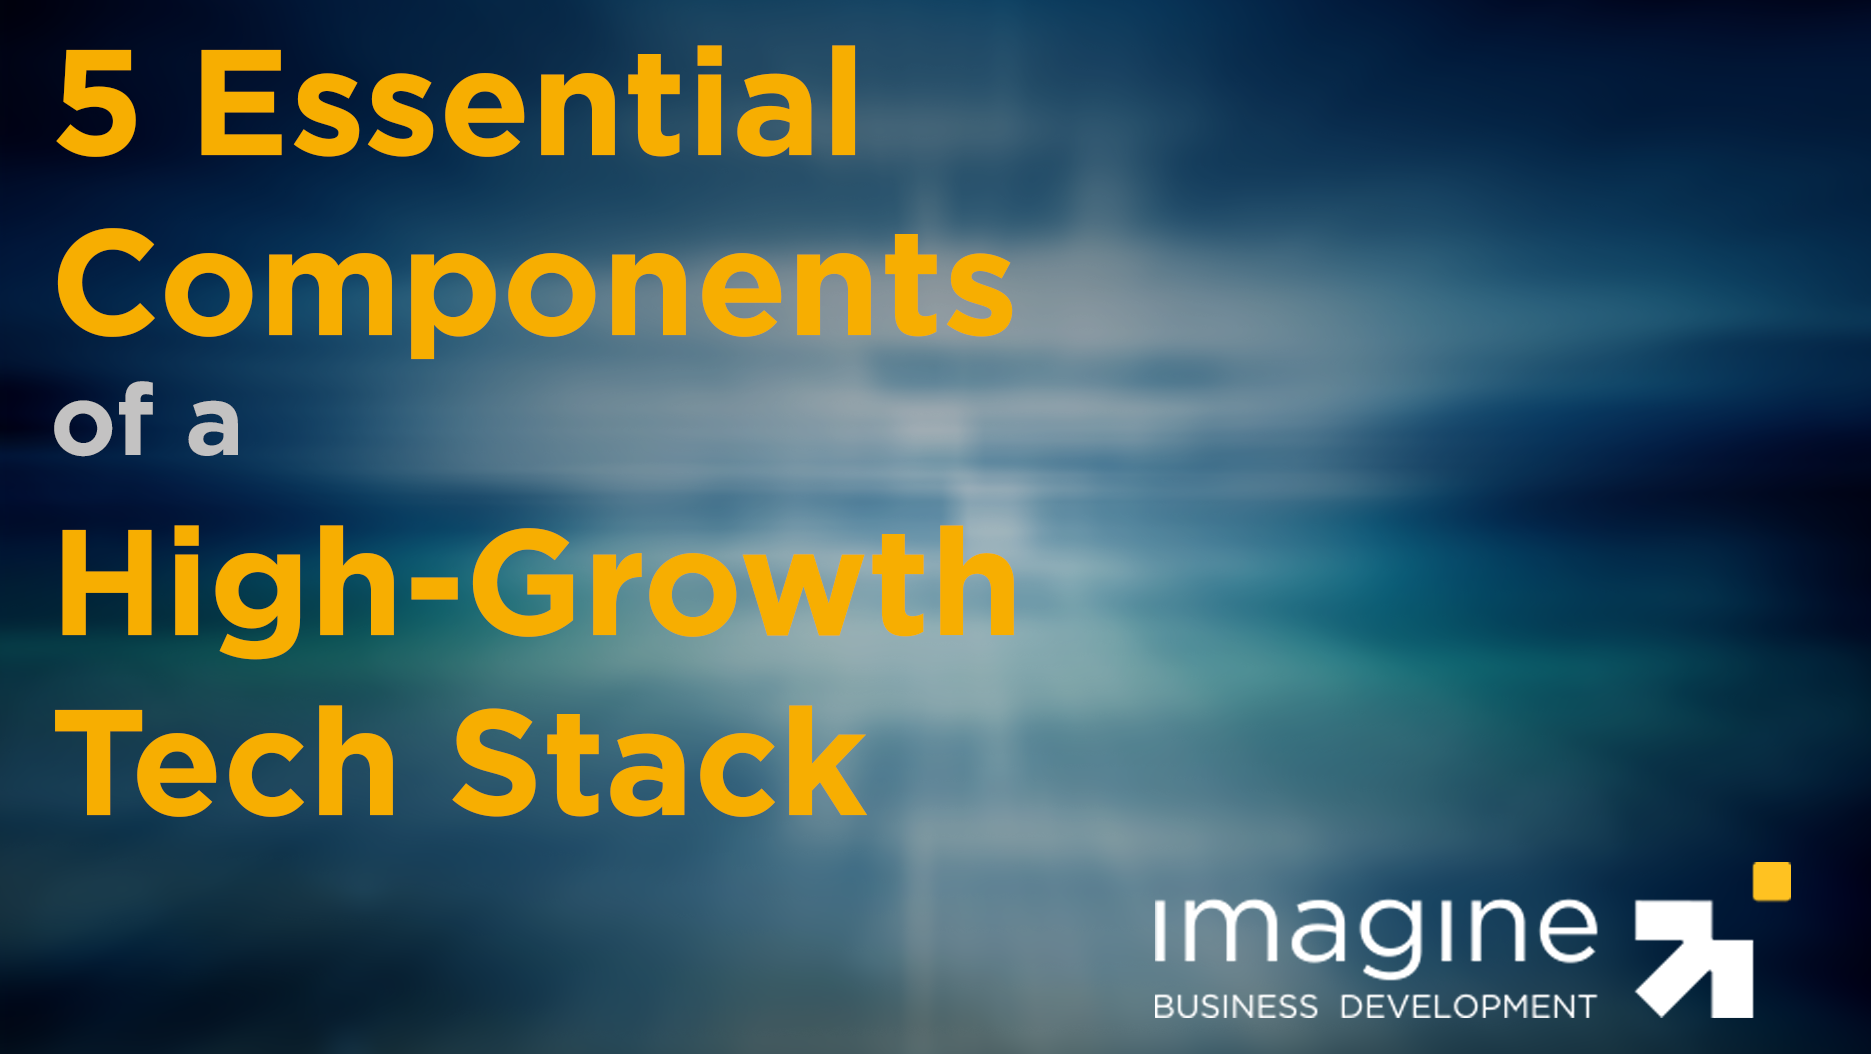 5 Essential Components of a High-Growth Tech Stack